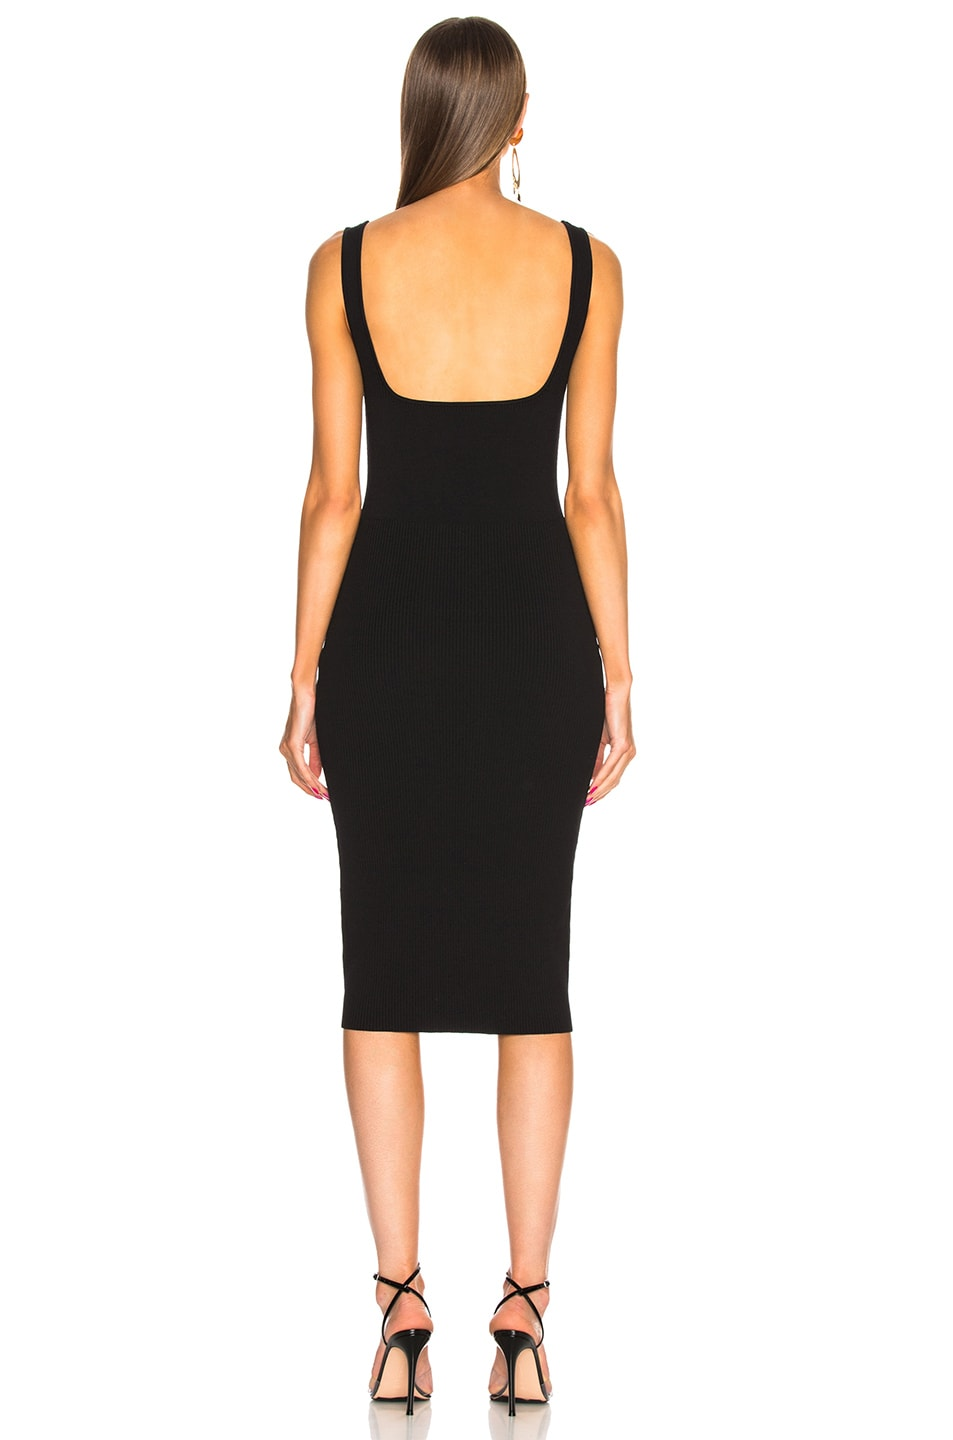 DION LEE Dresses DION LEE PINNACLE BUSTIER DRESS IN BLACK